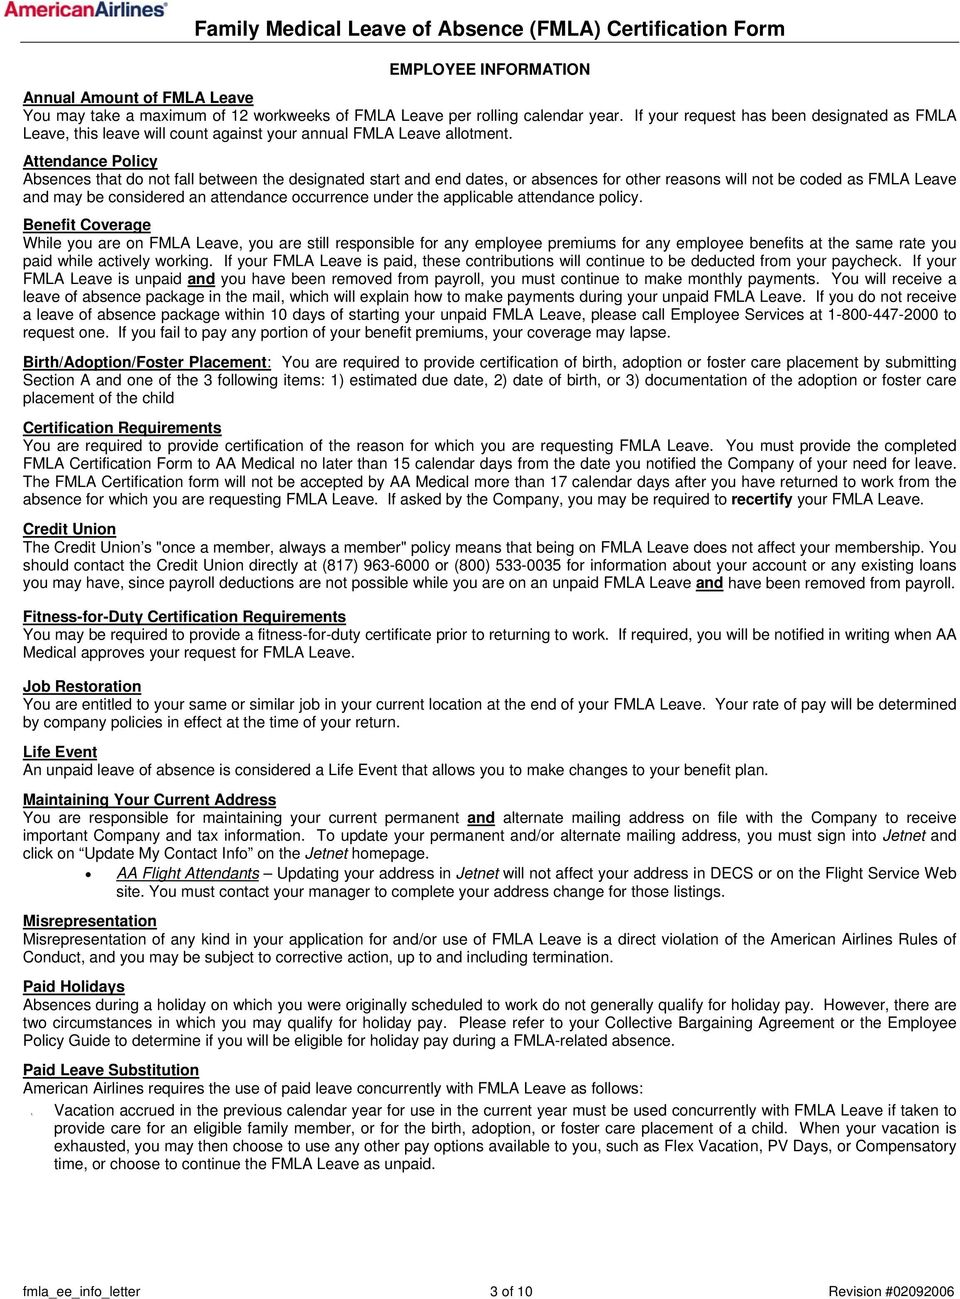 Family Medical Leave Of Absence Fmla Certification Form Pdf